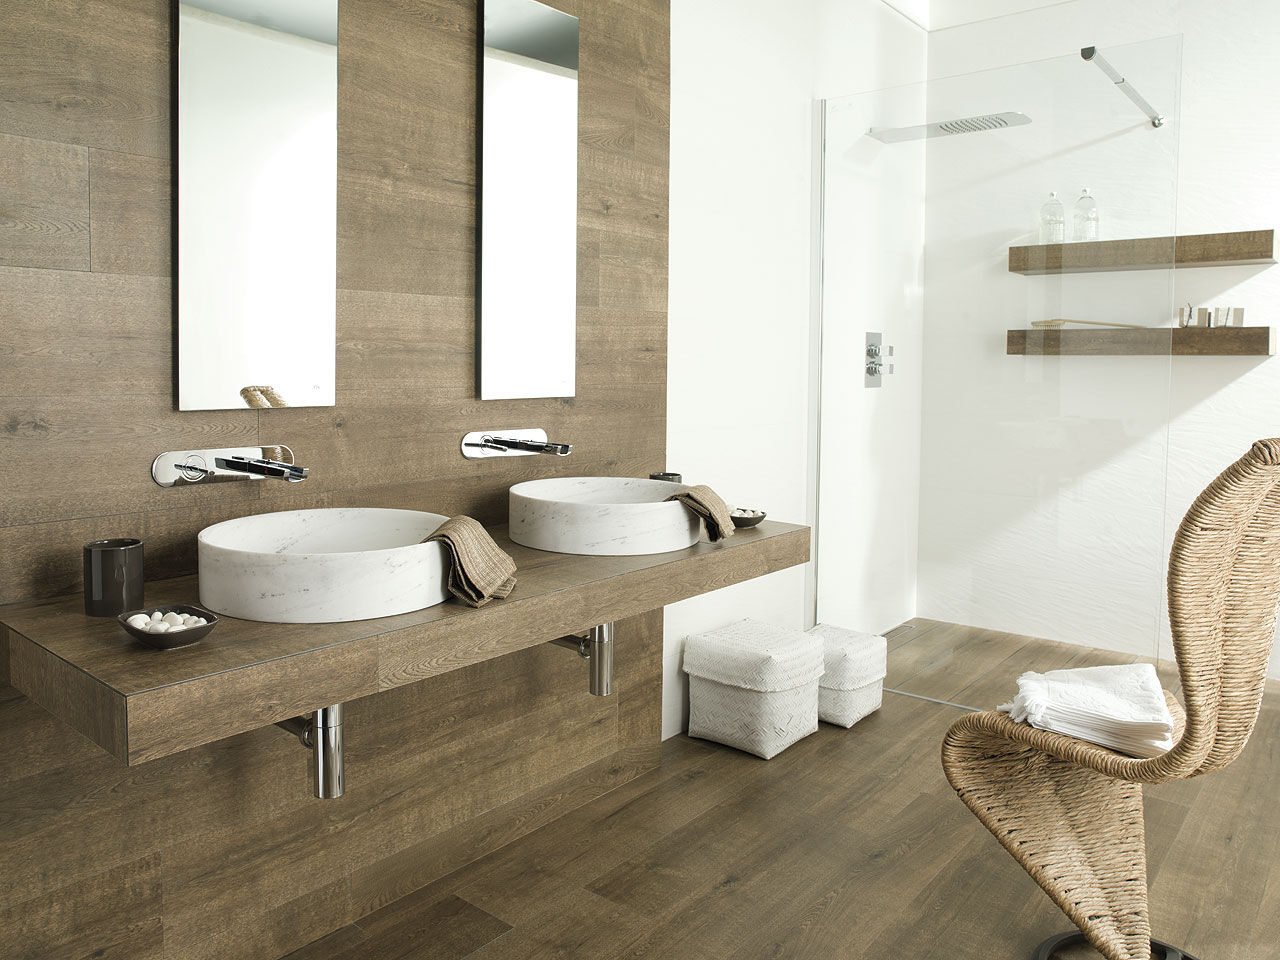 27 ideas and pictures of wood or tile baseboard in bathroom - Suelo imitacion parquet ...